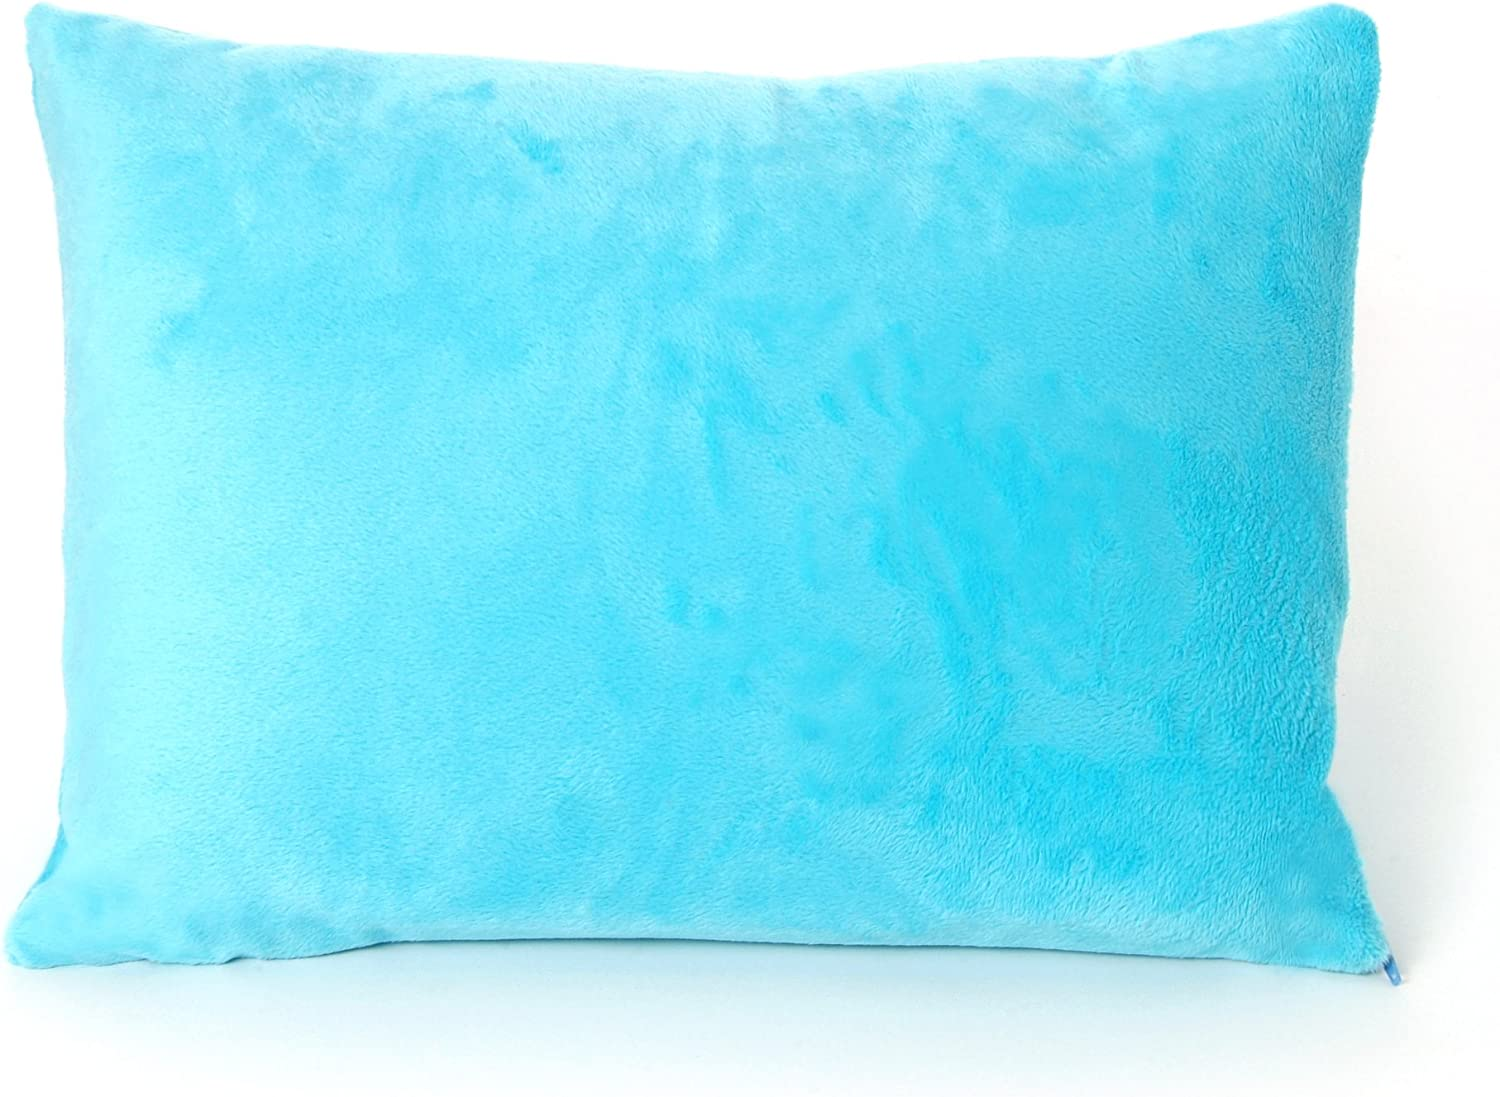 "My First Premium Memory Foam Kids Toddler Pillow with Pillowcase, Blue, 12"" x 16"""